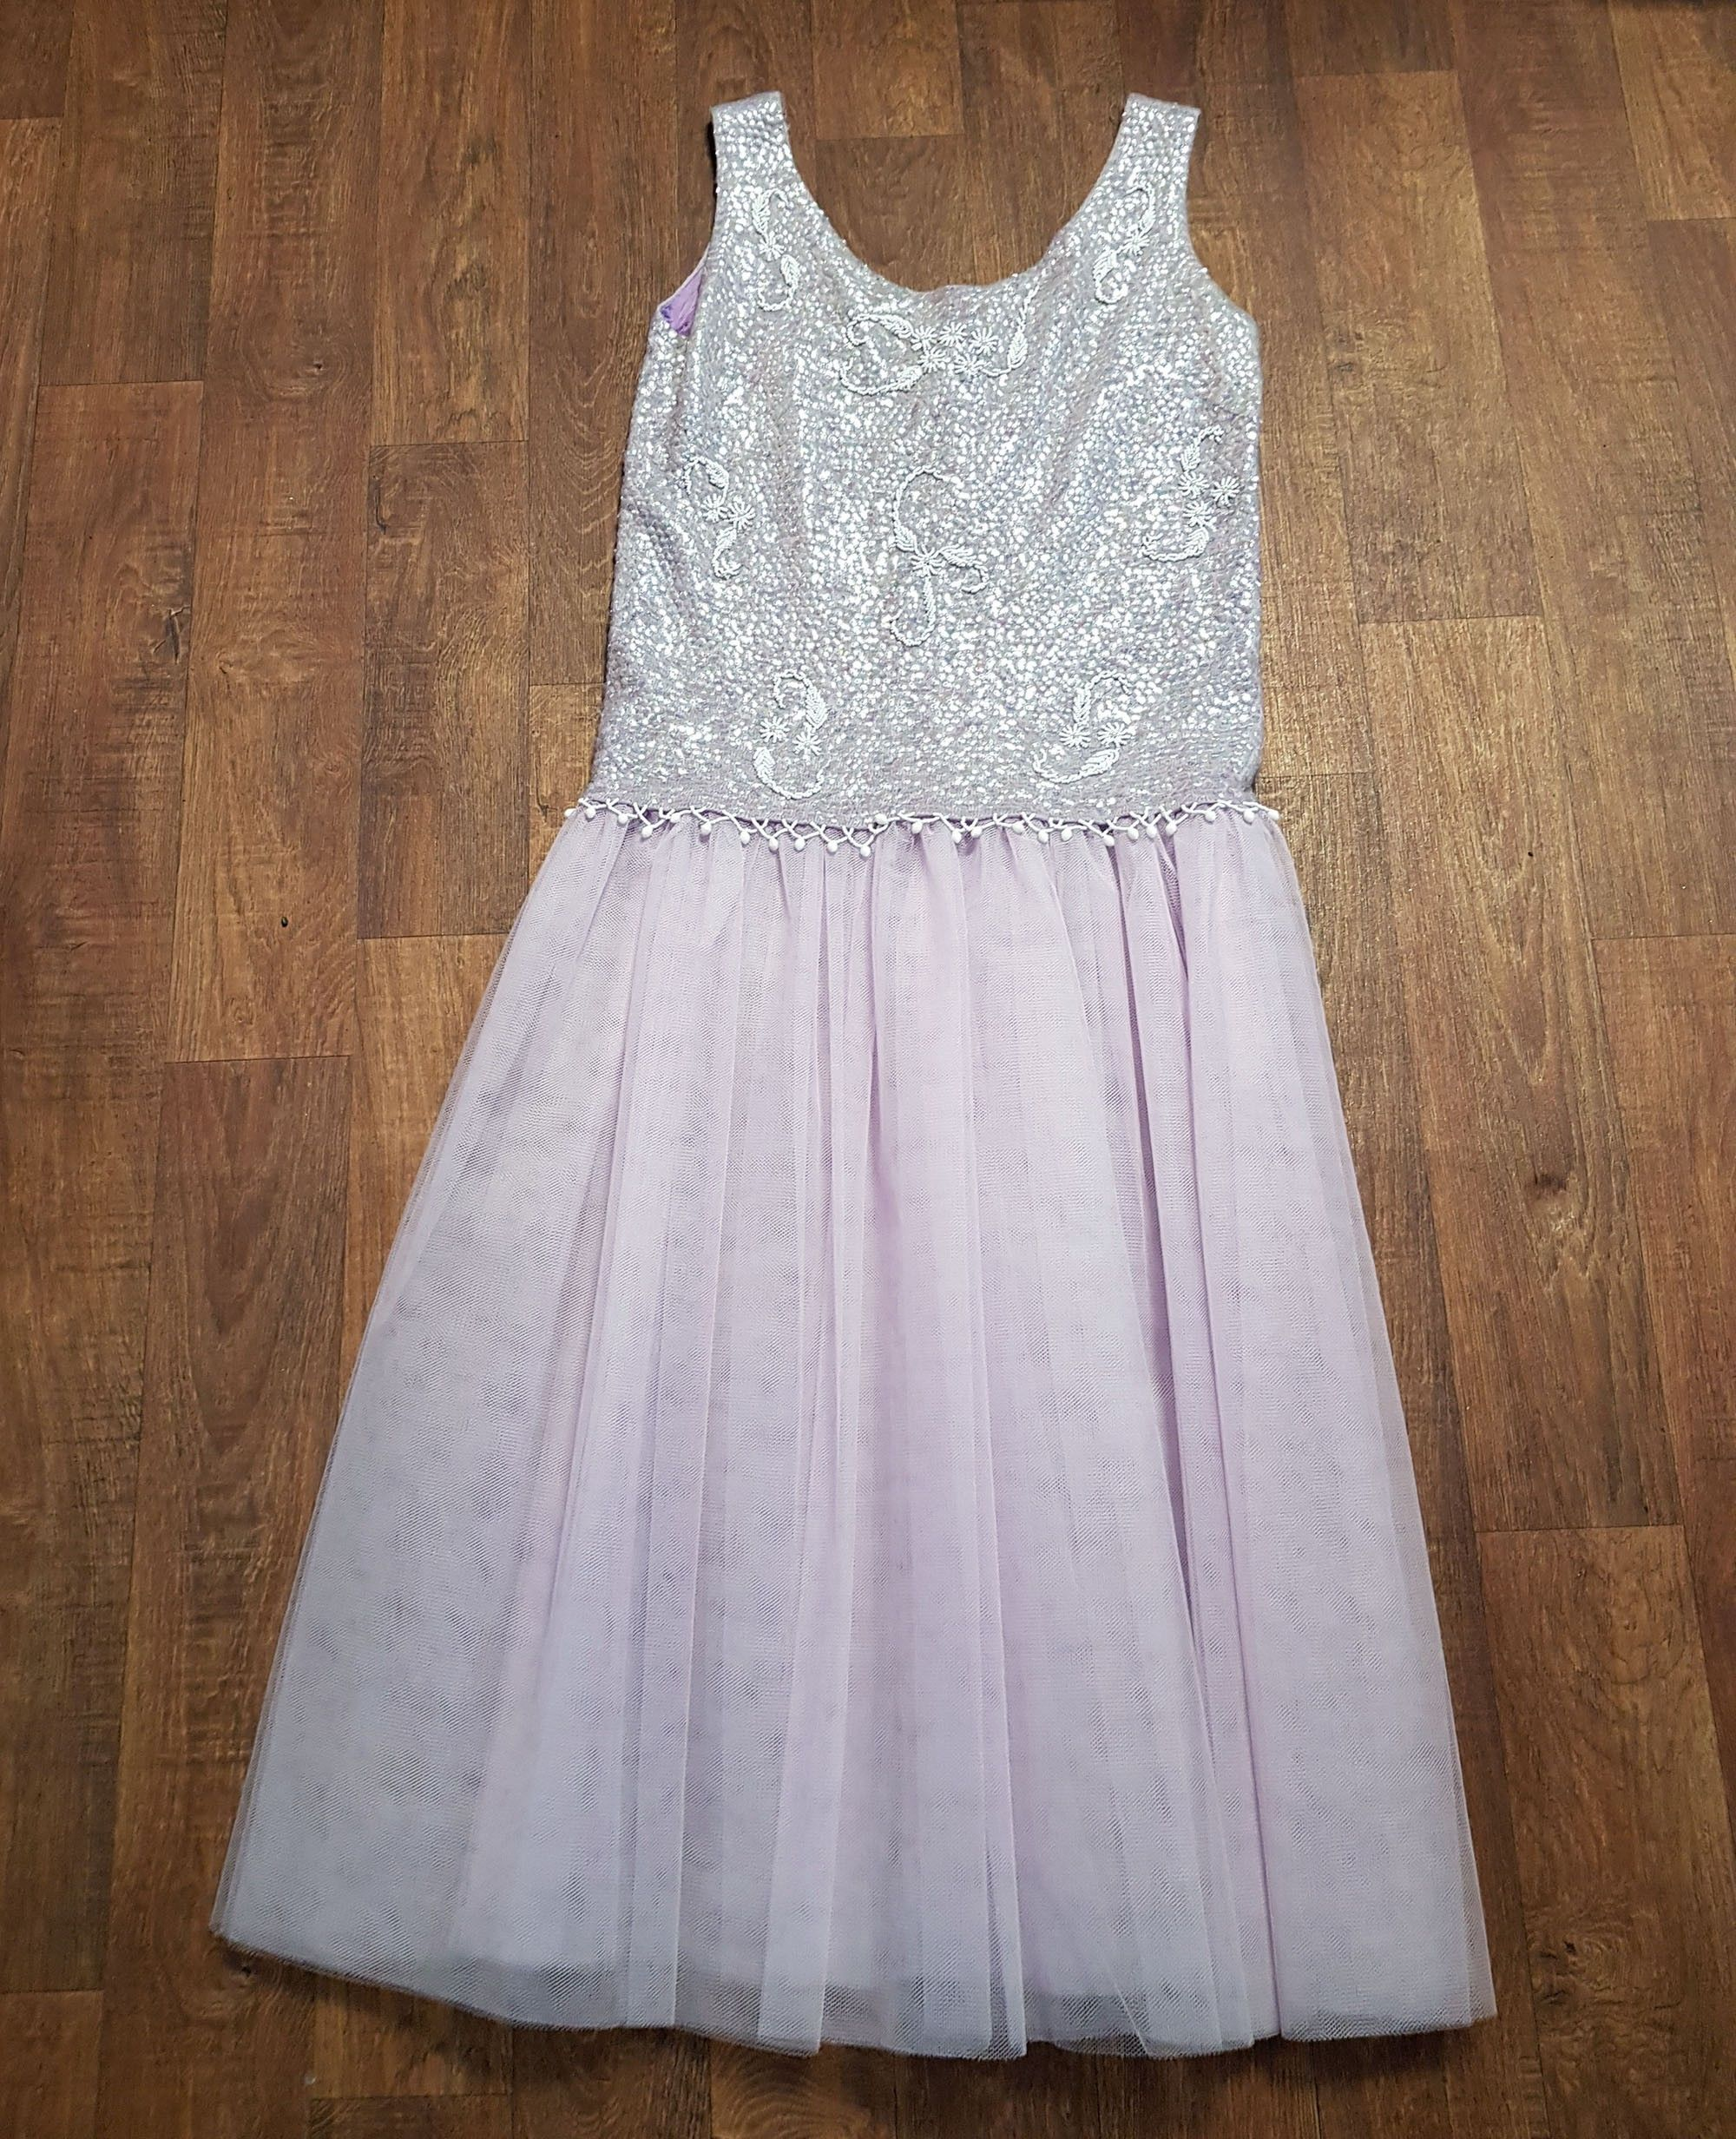 1980s Vintage Handmade Lilac Net Party Dress UK Size 16/18